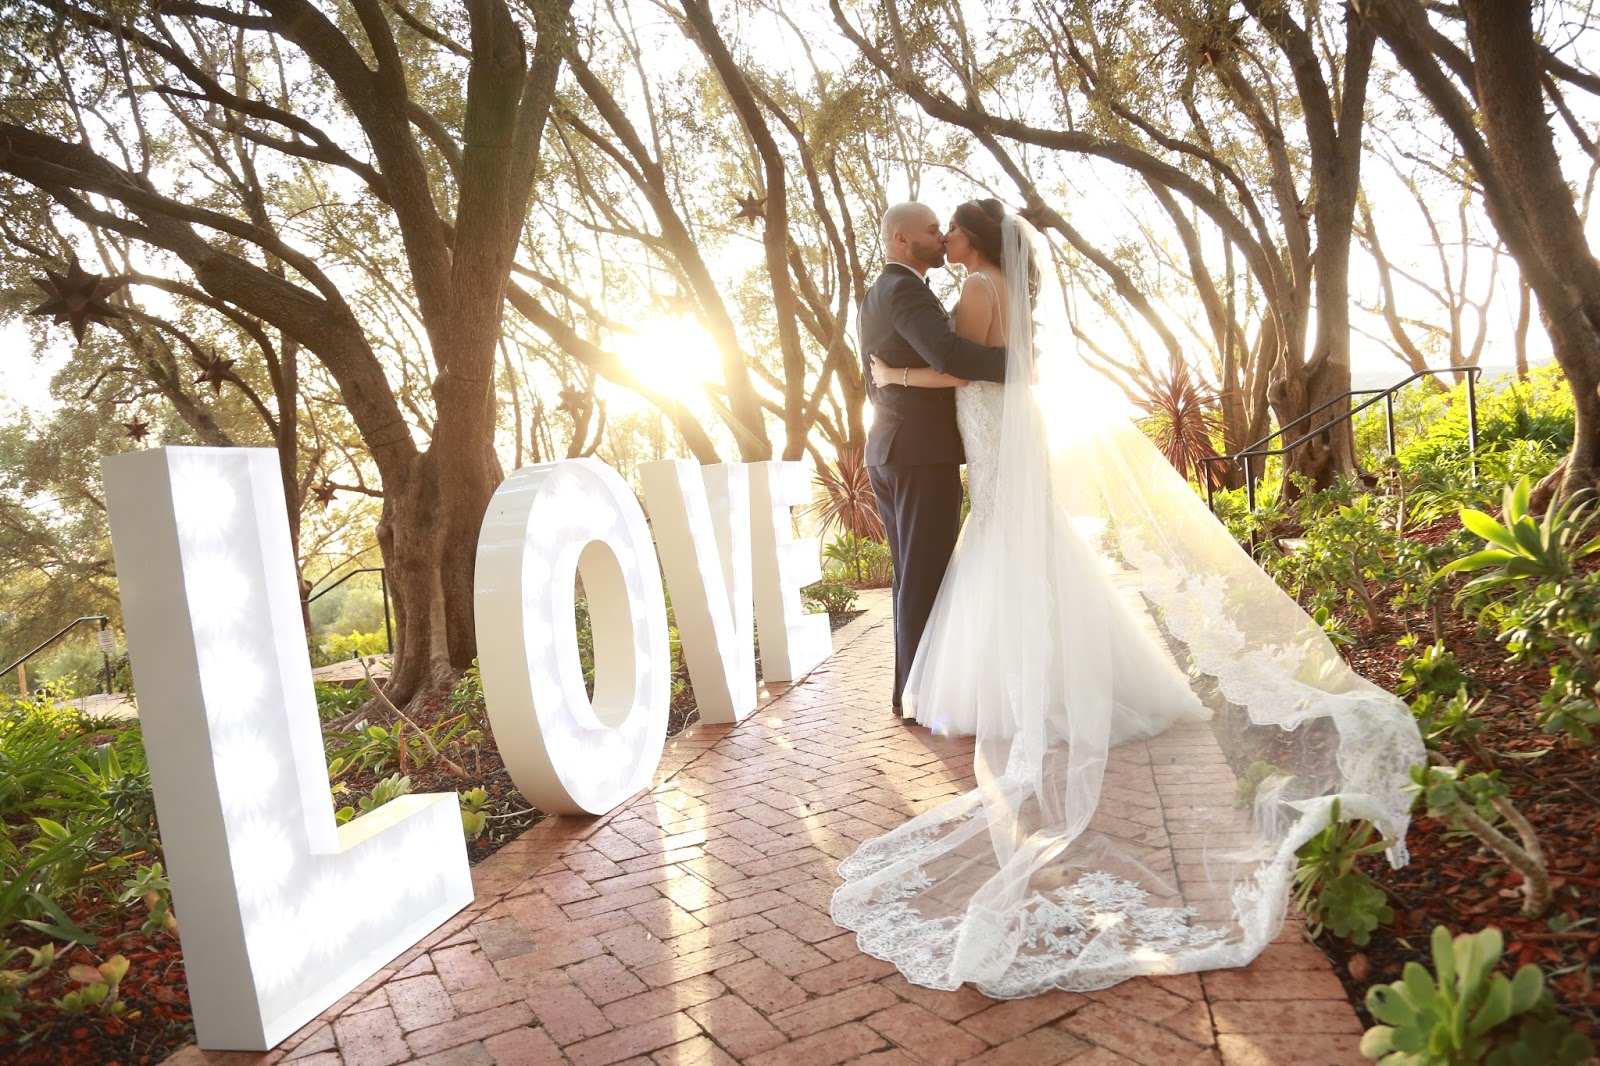 Bride and Groom by LOVE sign